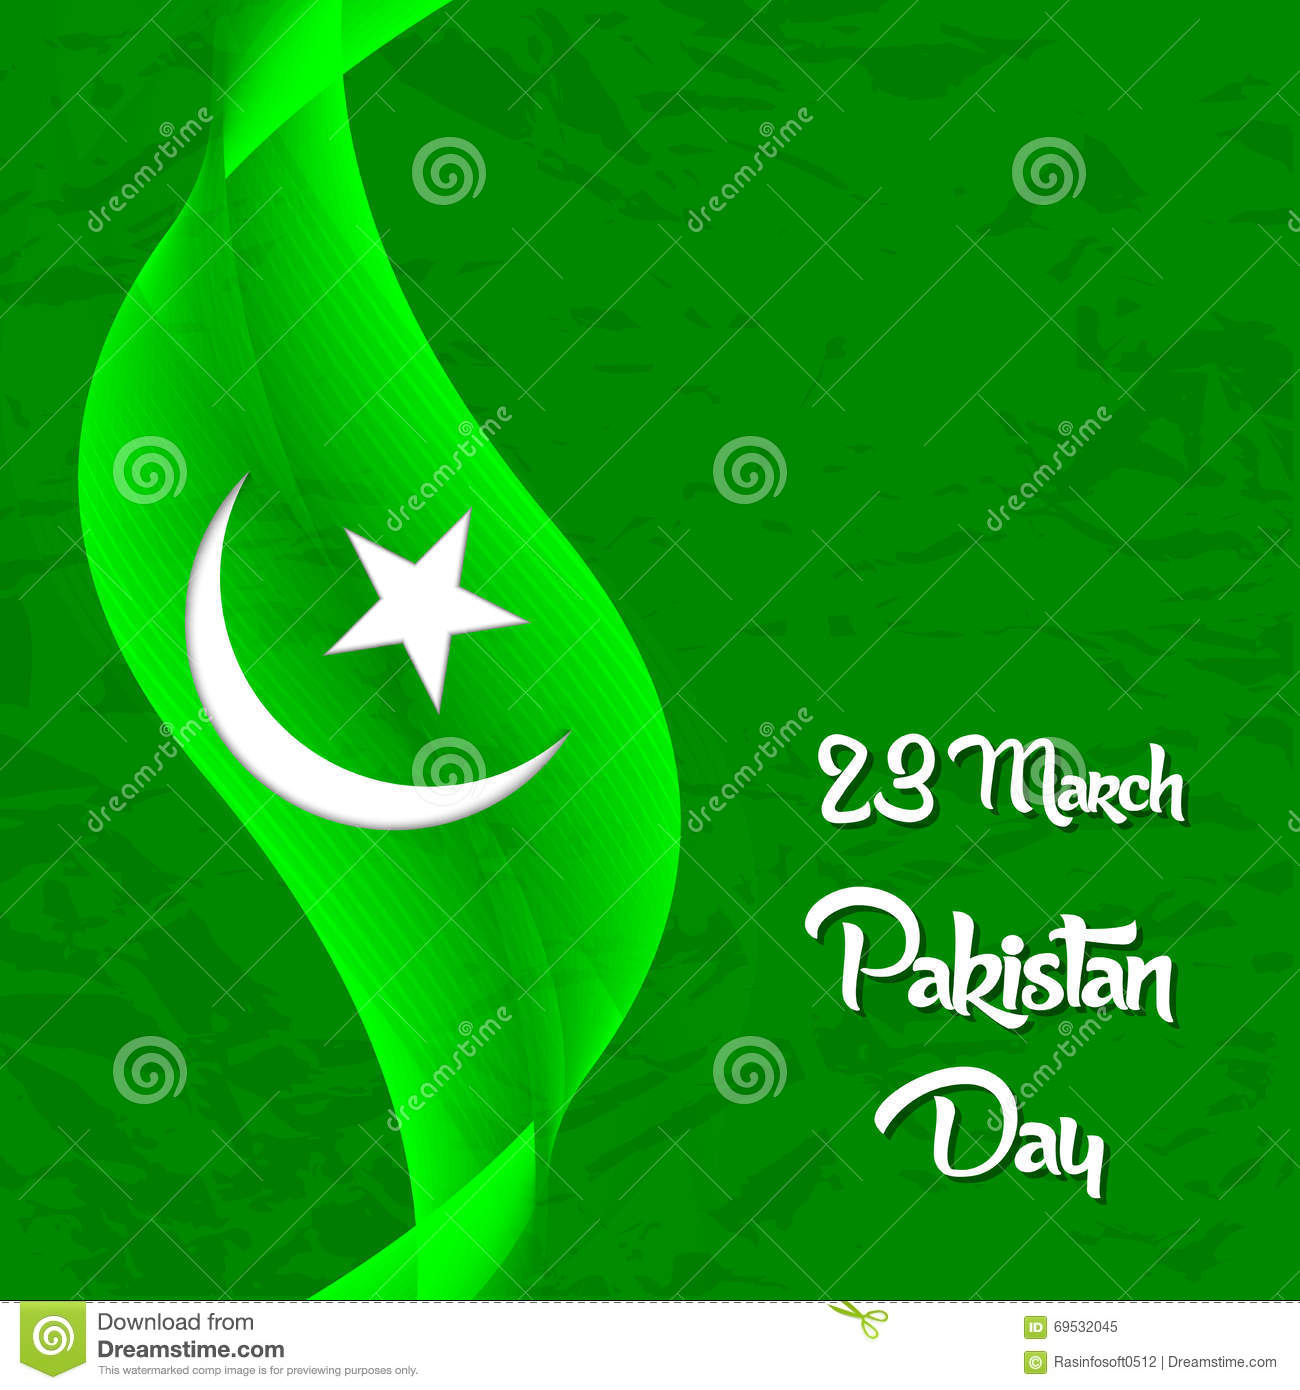 Pakistan Day (23 march) | FESTIVALS IN PAKISTAN